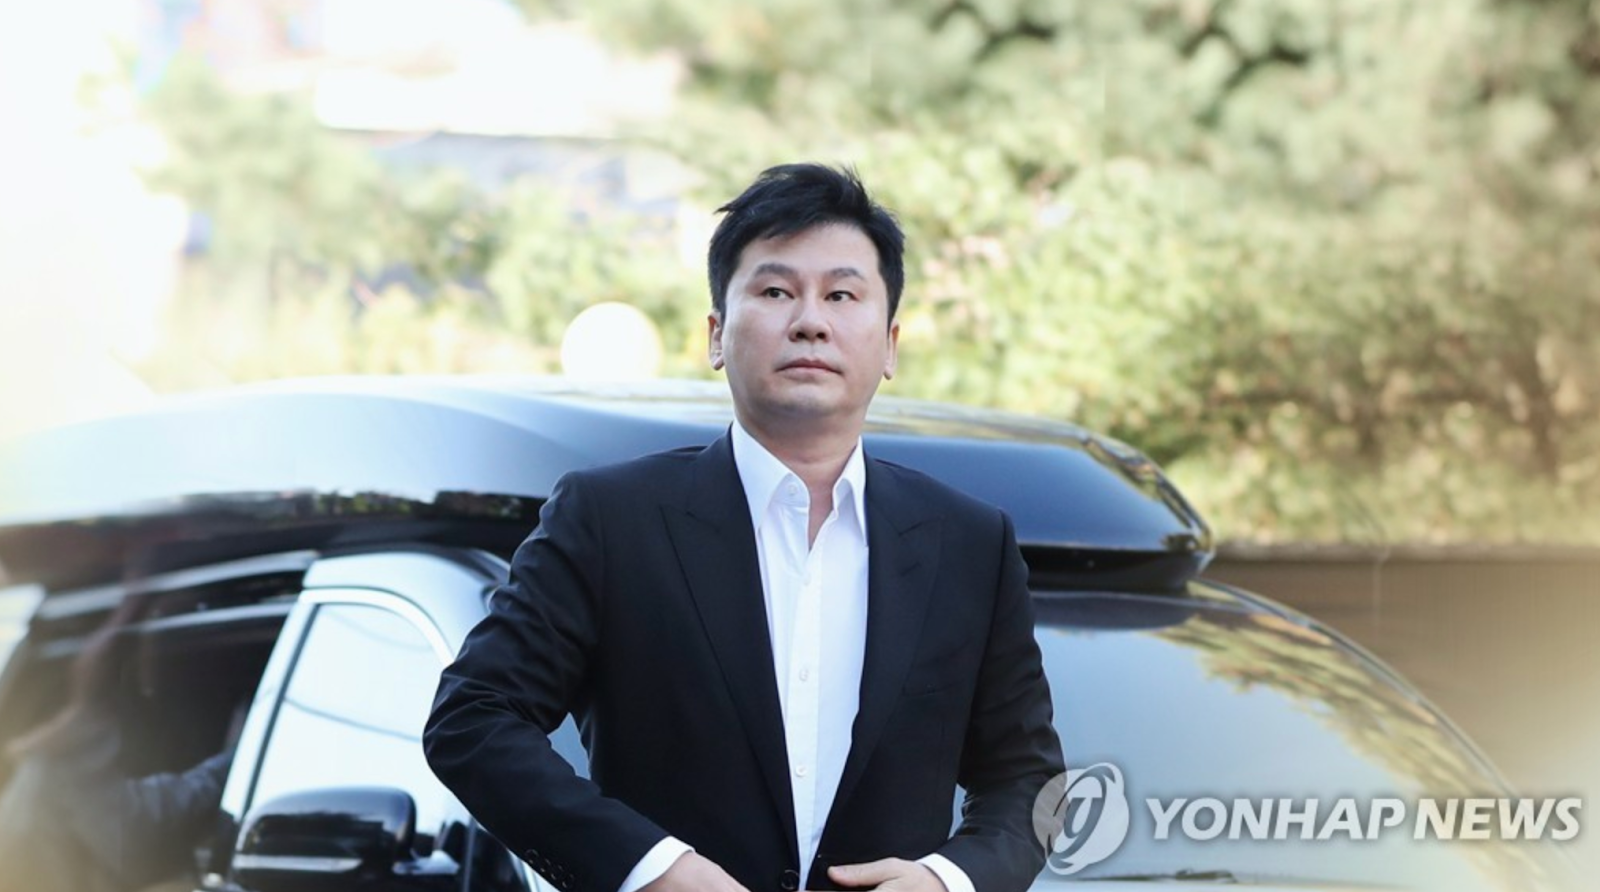 Passing the Second Trial, Yang Hyun Suk is Charged With Paying 10 Million Won on Charges of Gambling